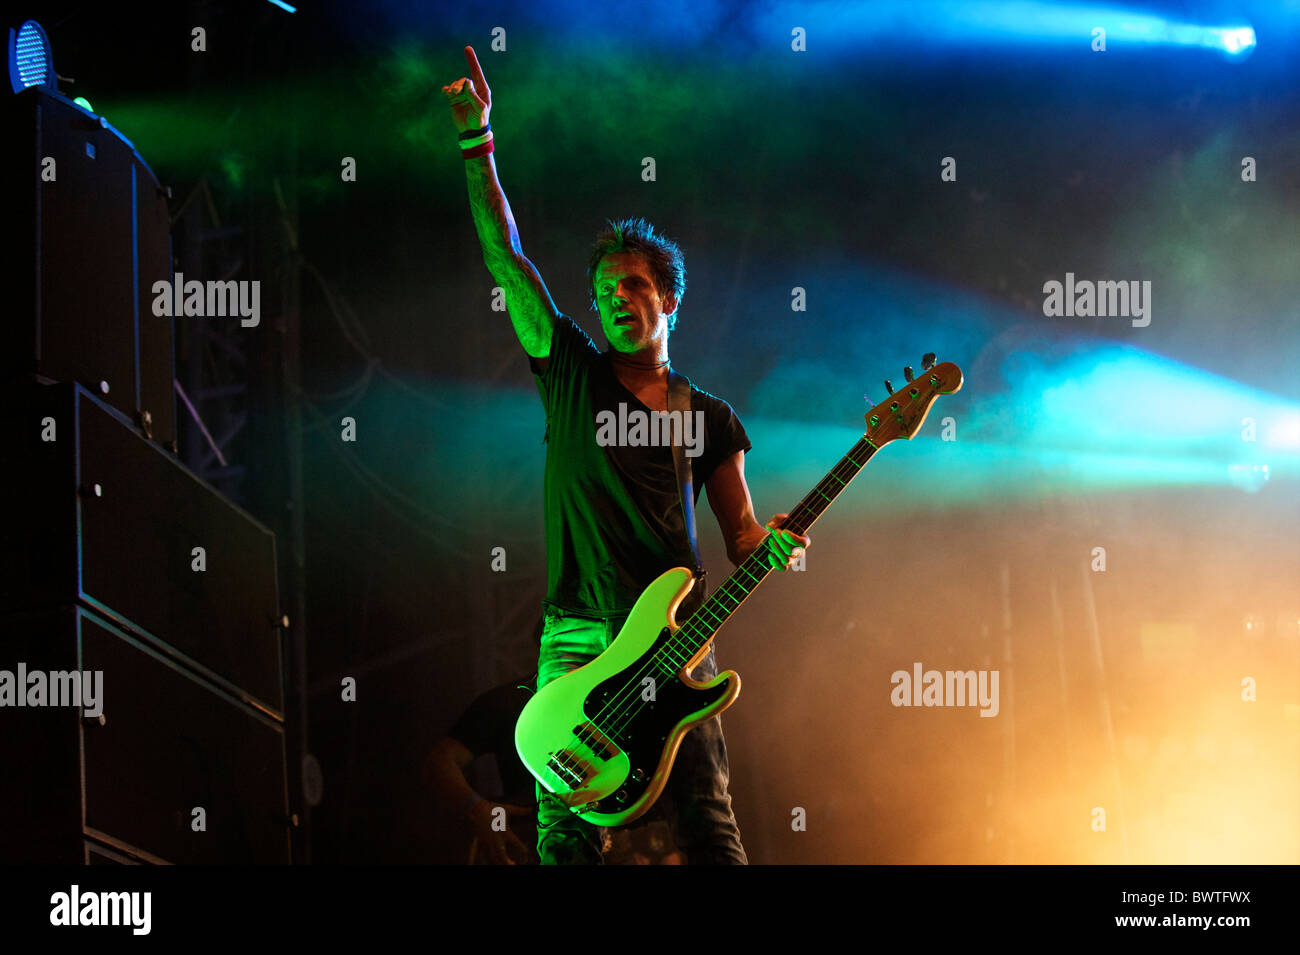 The Prodigy perform on the final day of Bestival 2010 in Newport, Isle of Wight, England on September 12, 2010. - Stock Image